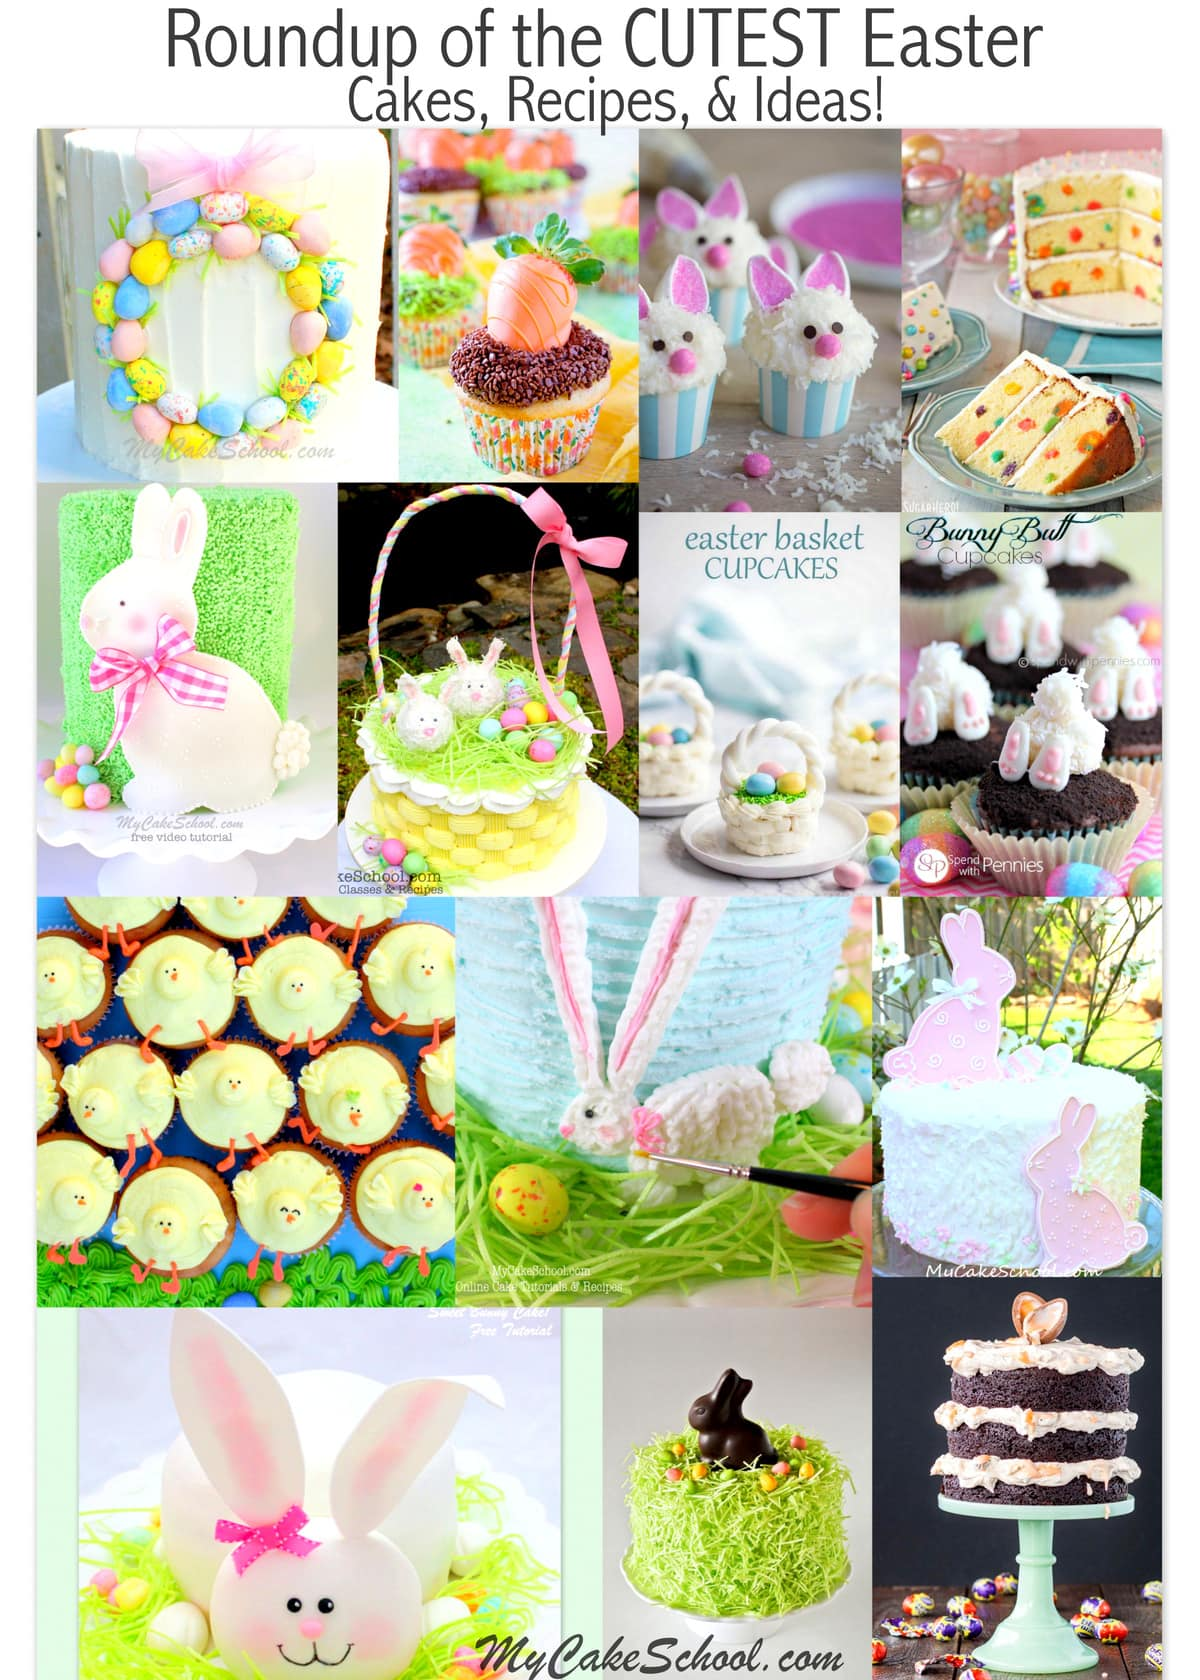 Roundup of the BEST Easter and Springtime Cakes, Tutorials, and Recipes! MyCakeSchool.com.